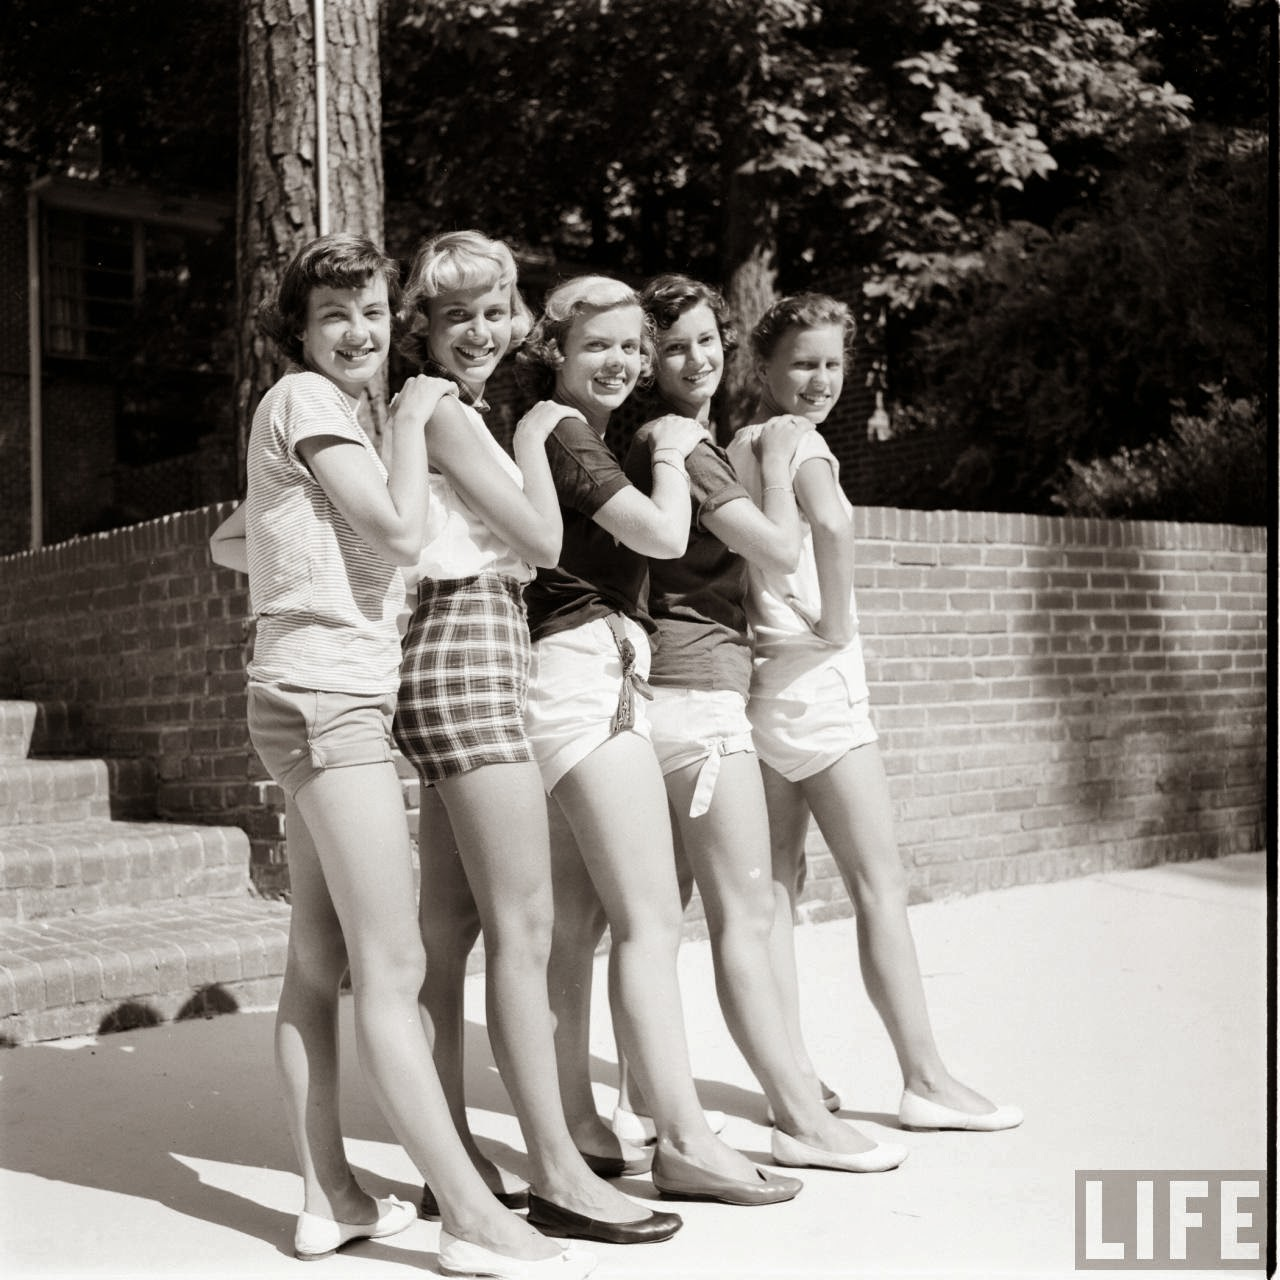 Short Shorts in the 1950's (19)